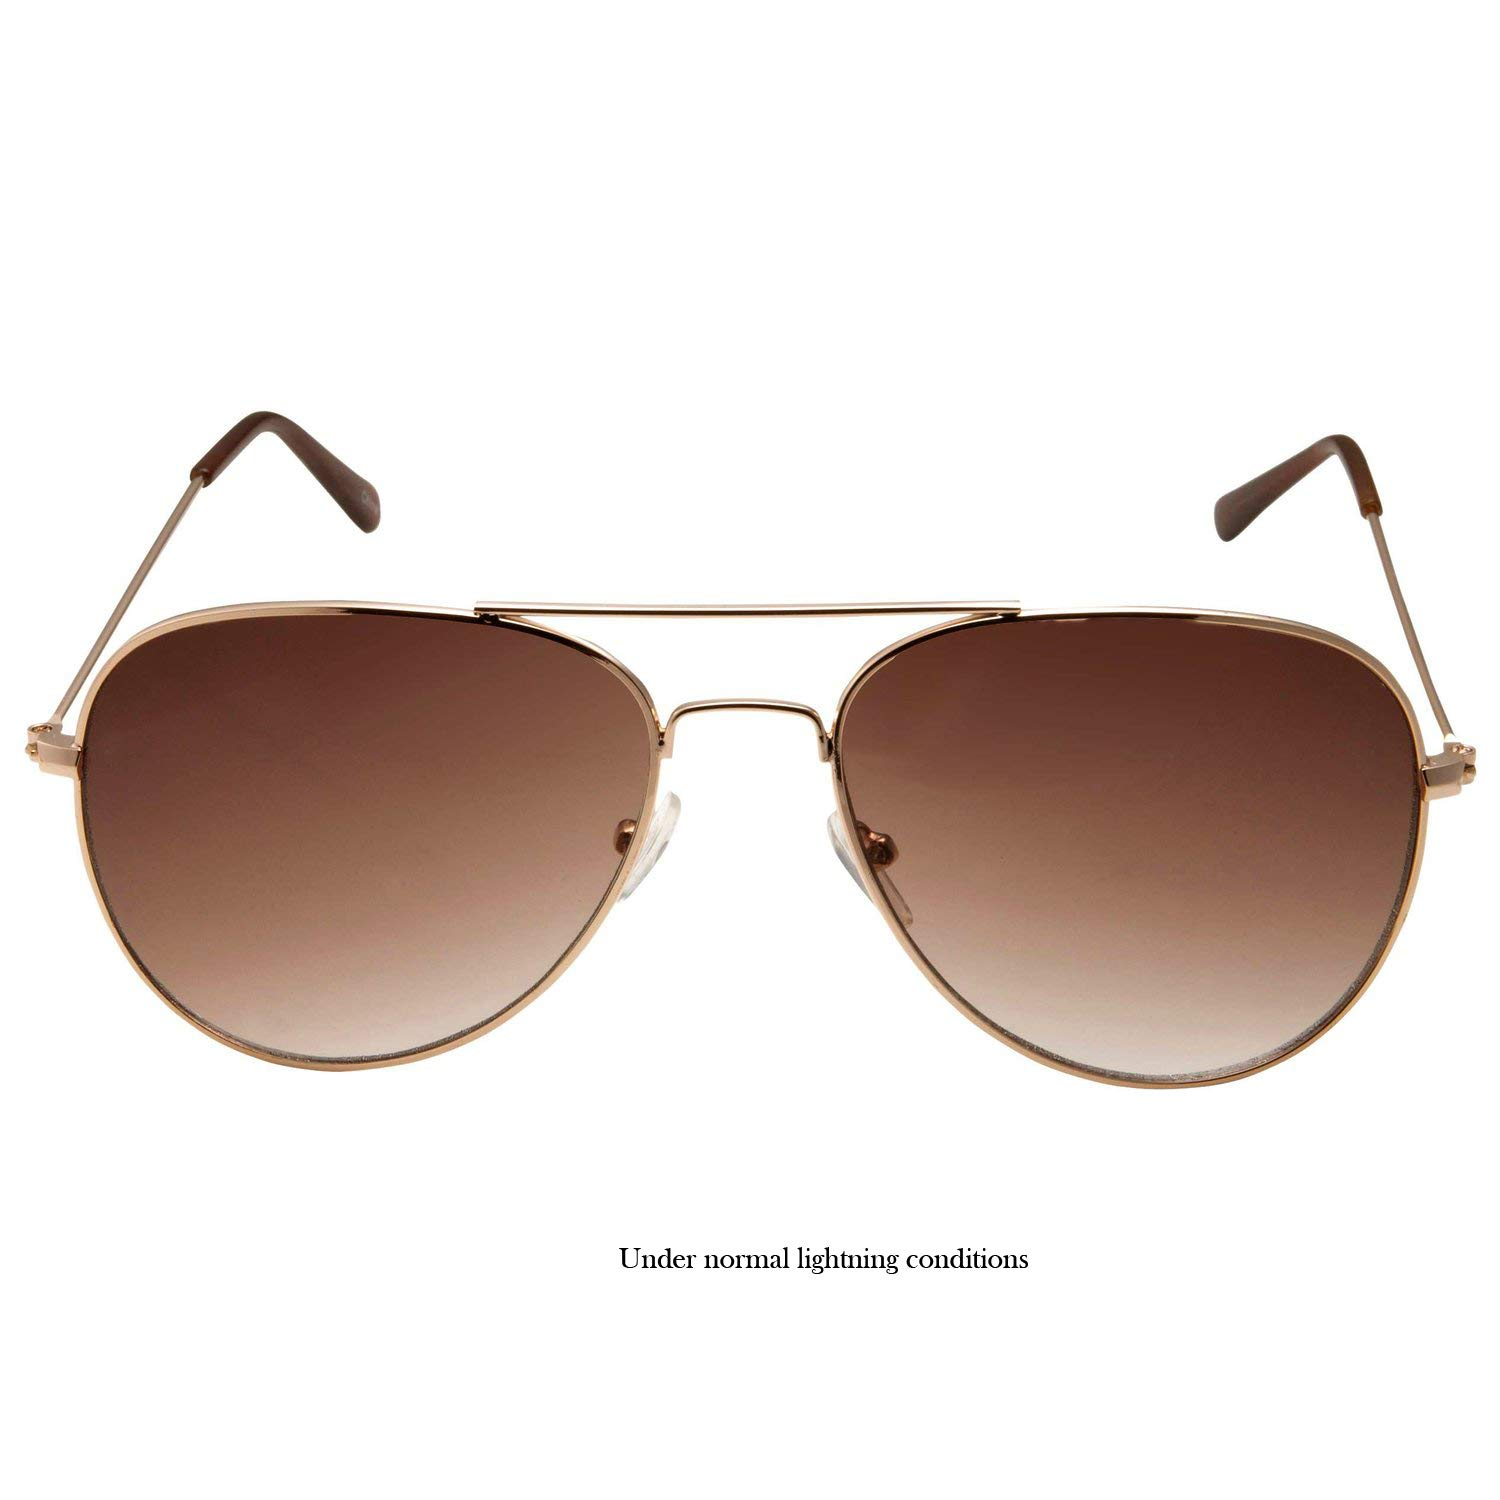 b3711ade30ff4 Amazon.com  SWG Eyewear Metal Classic Aviator Sunglasses in Gold Brown   Clothing